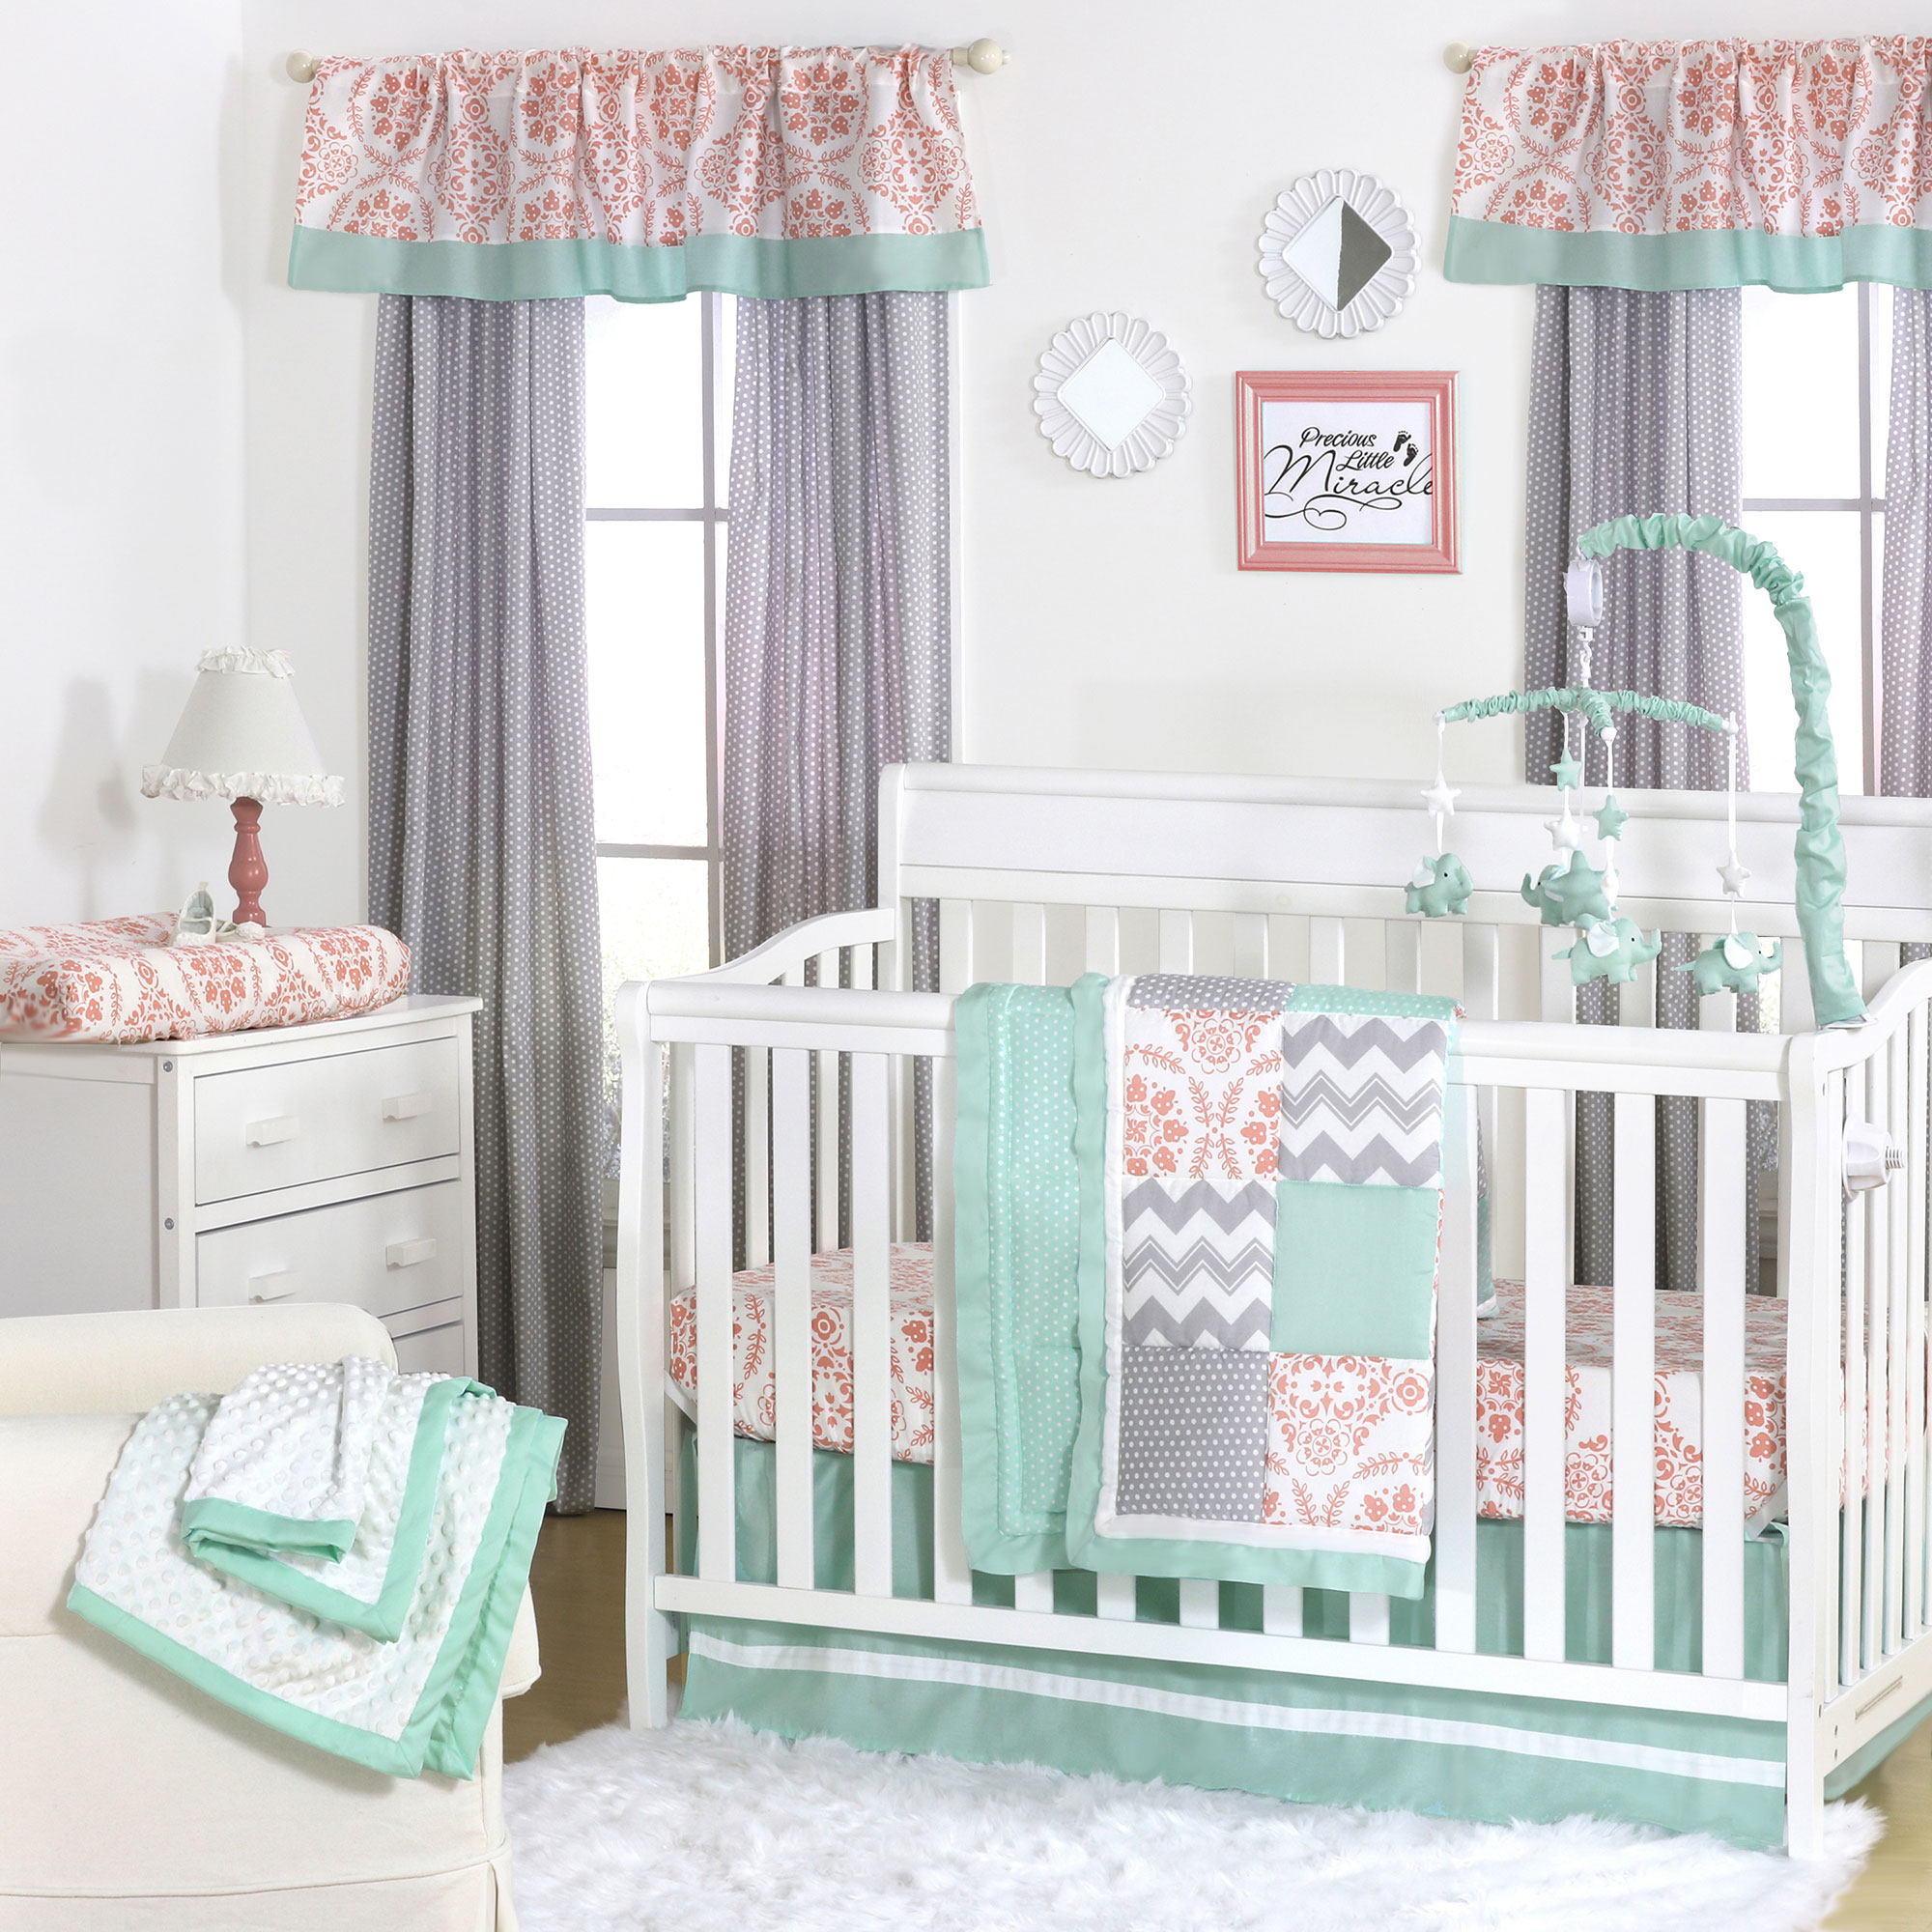 Mint Green, Coral Pink and Grey Patchwork 4 Piece Baby Crib Bedding